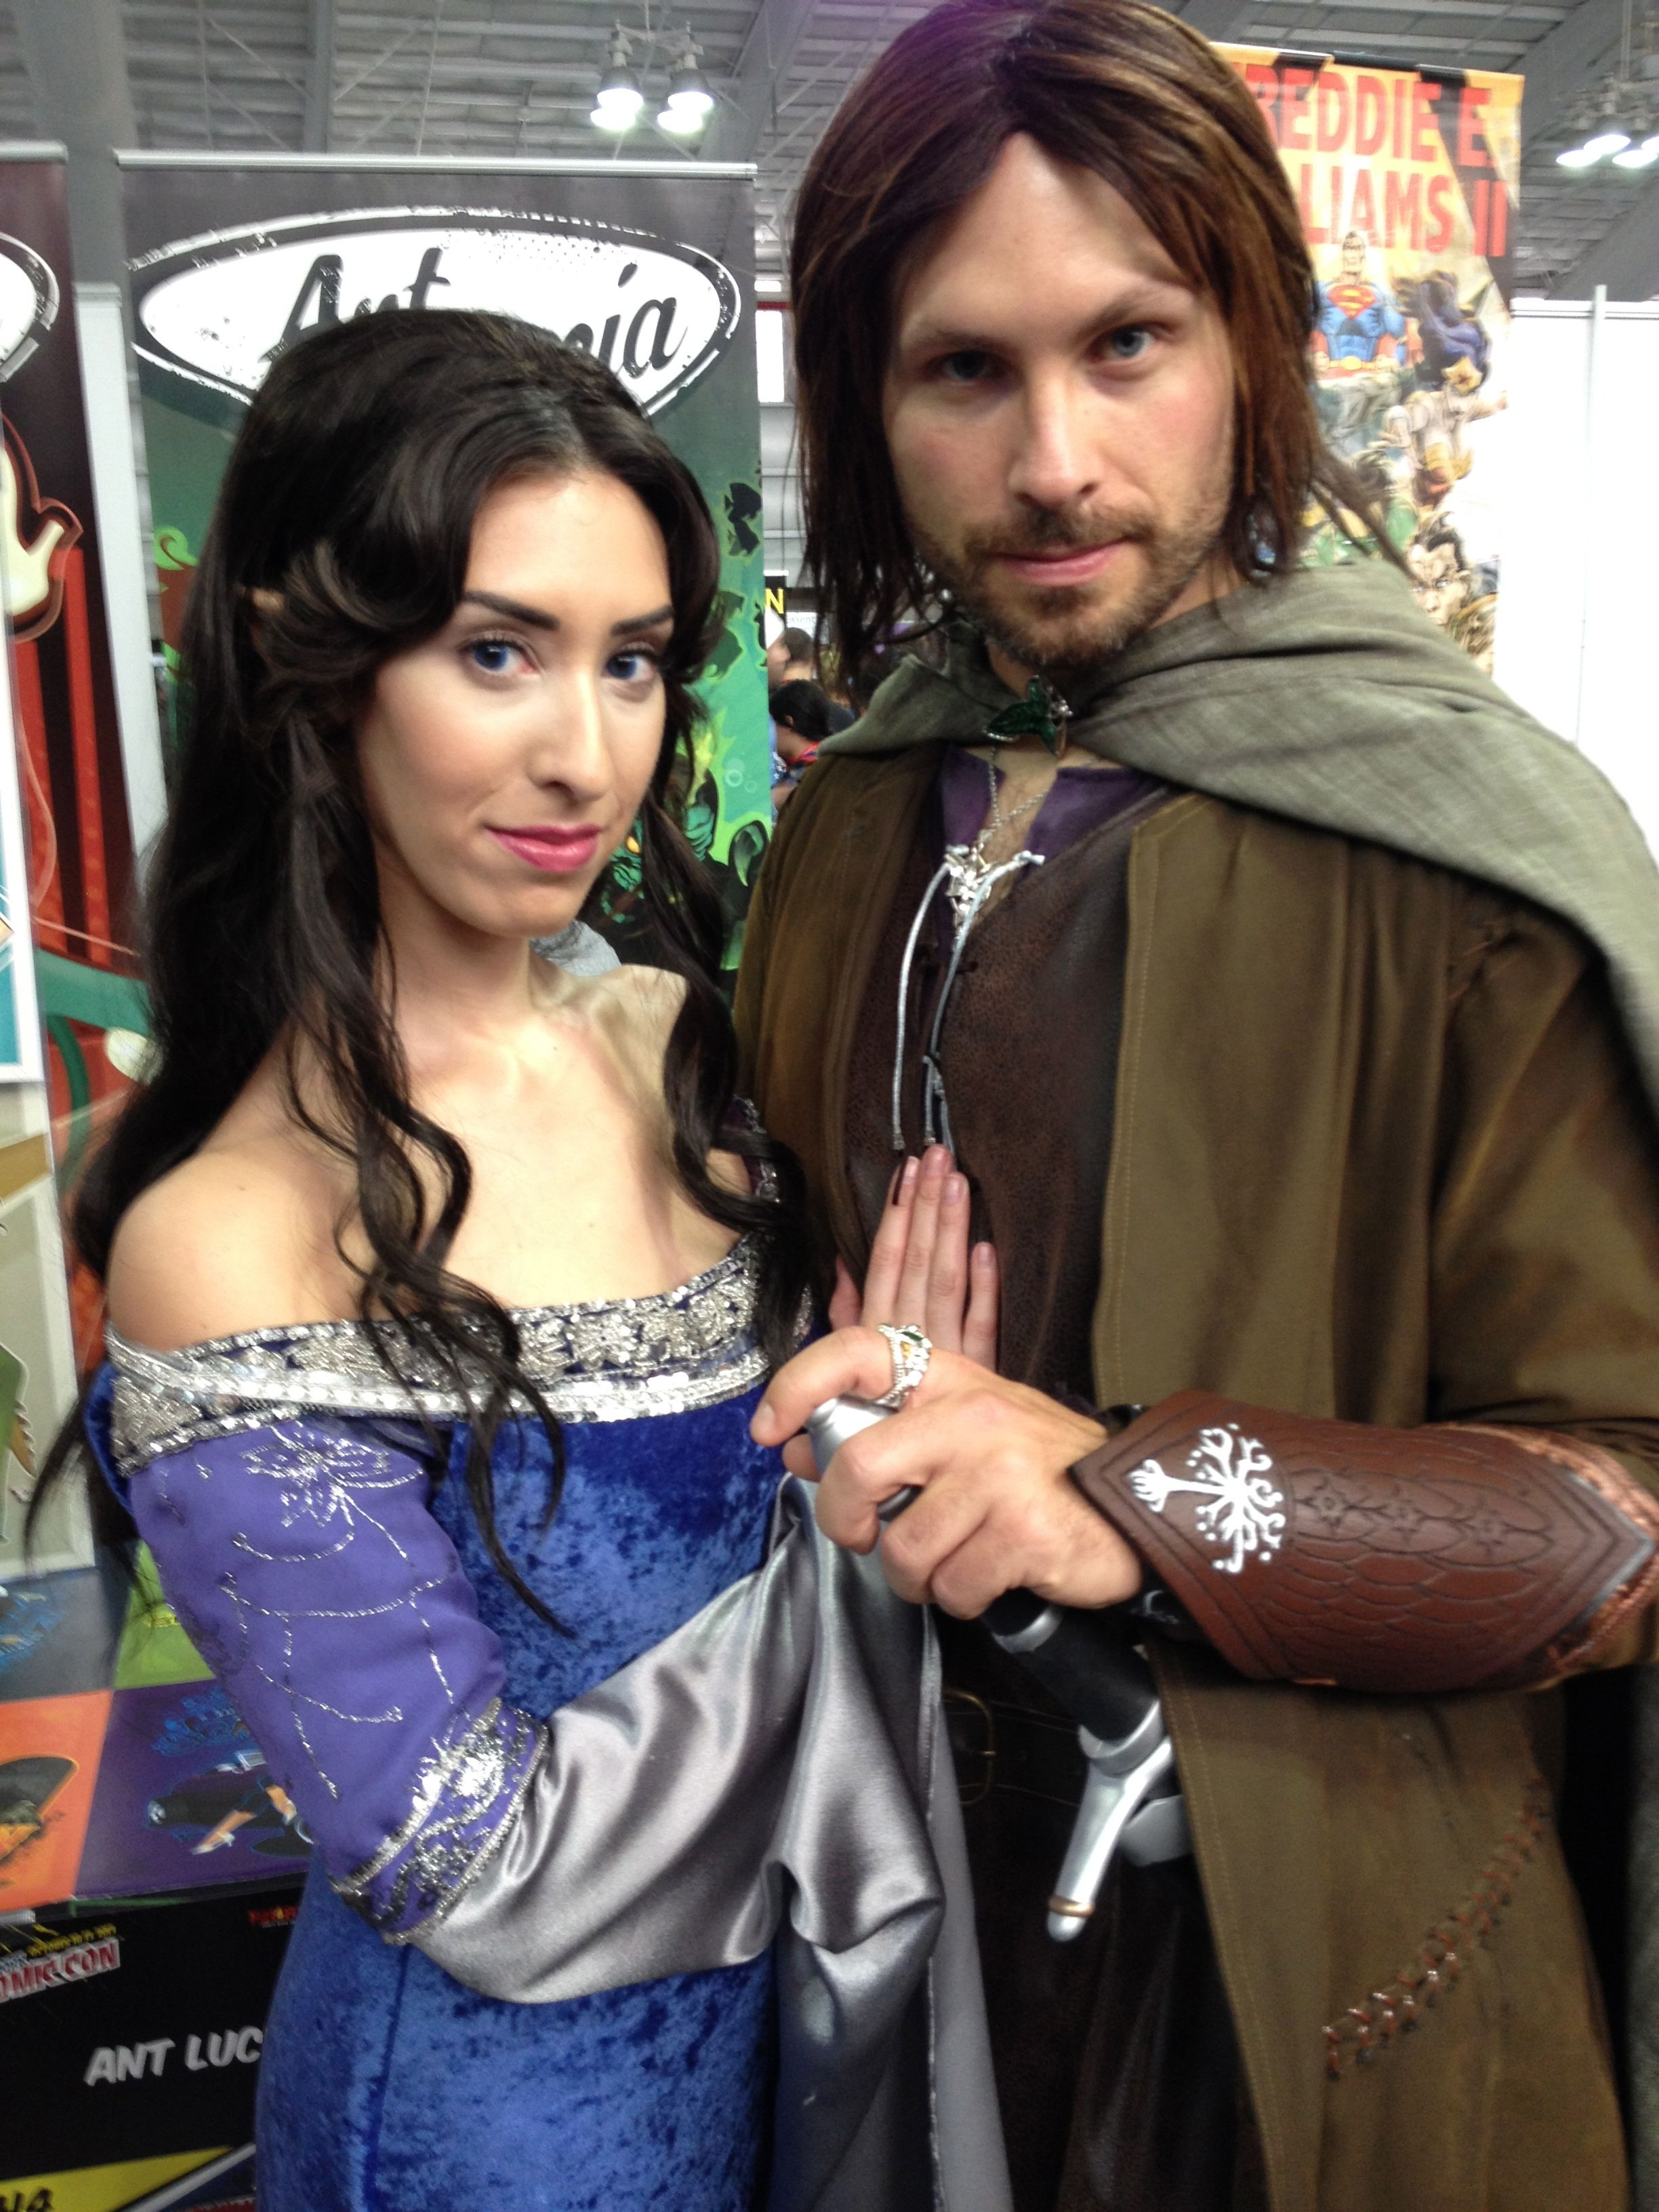 fantasy cosplay, lord of the rings, tolkien, aragorn, arwen, new